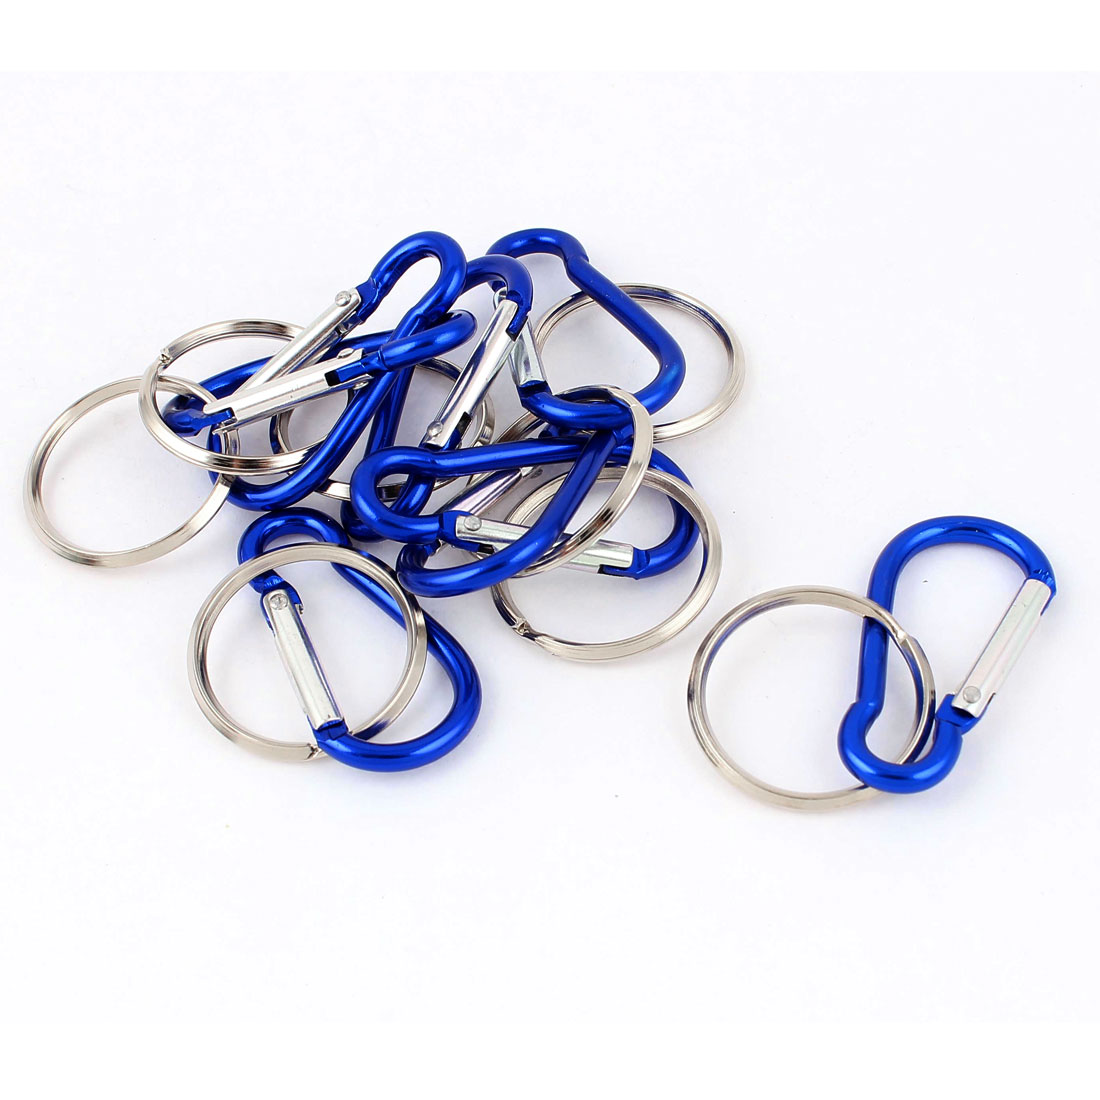 Camping Hiking Spring Ring Carabiner Clip Hook Keychain Keyring Key Chain Carrier 8pcs Blue